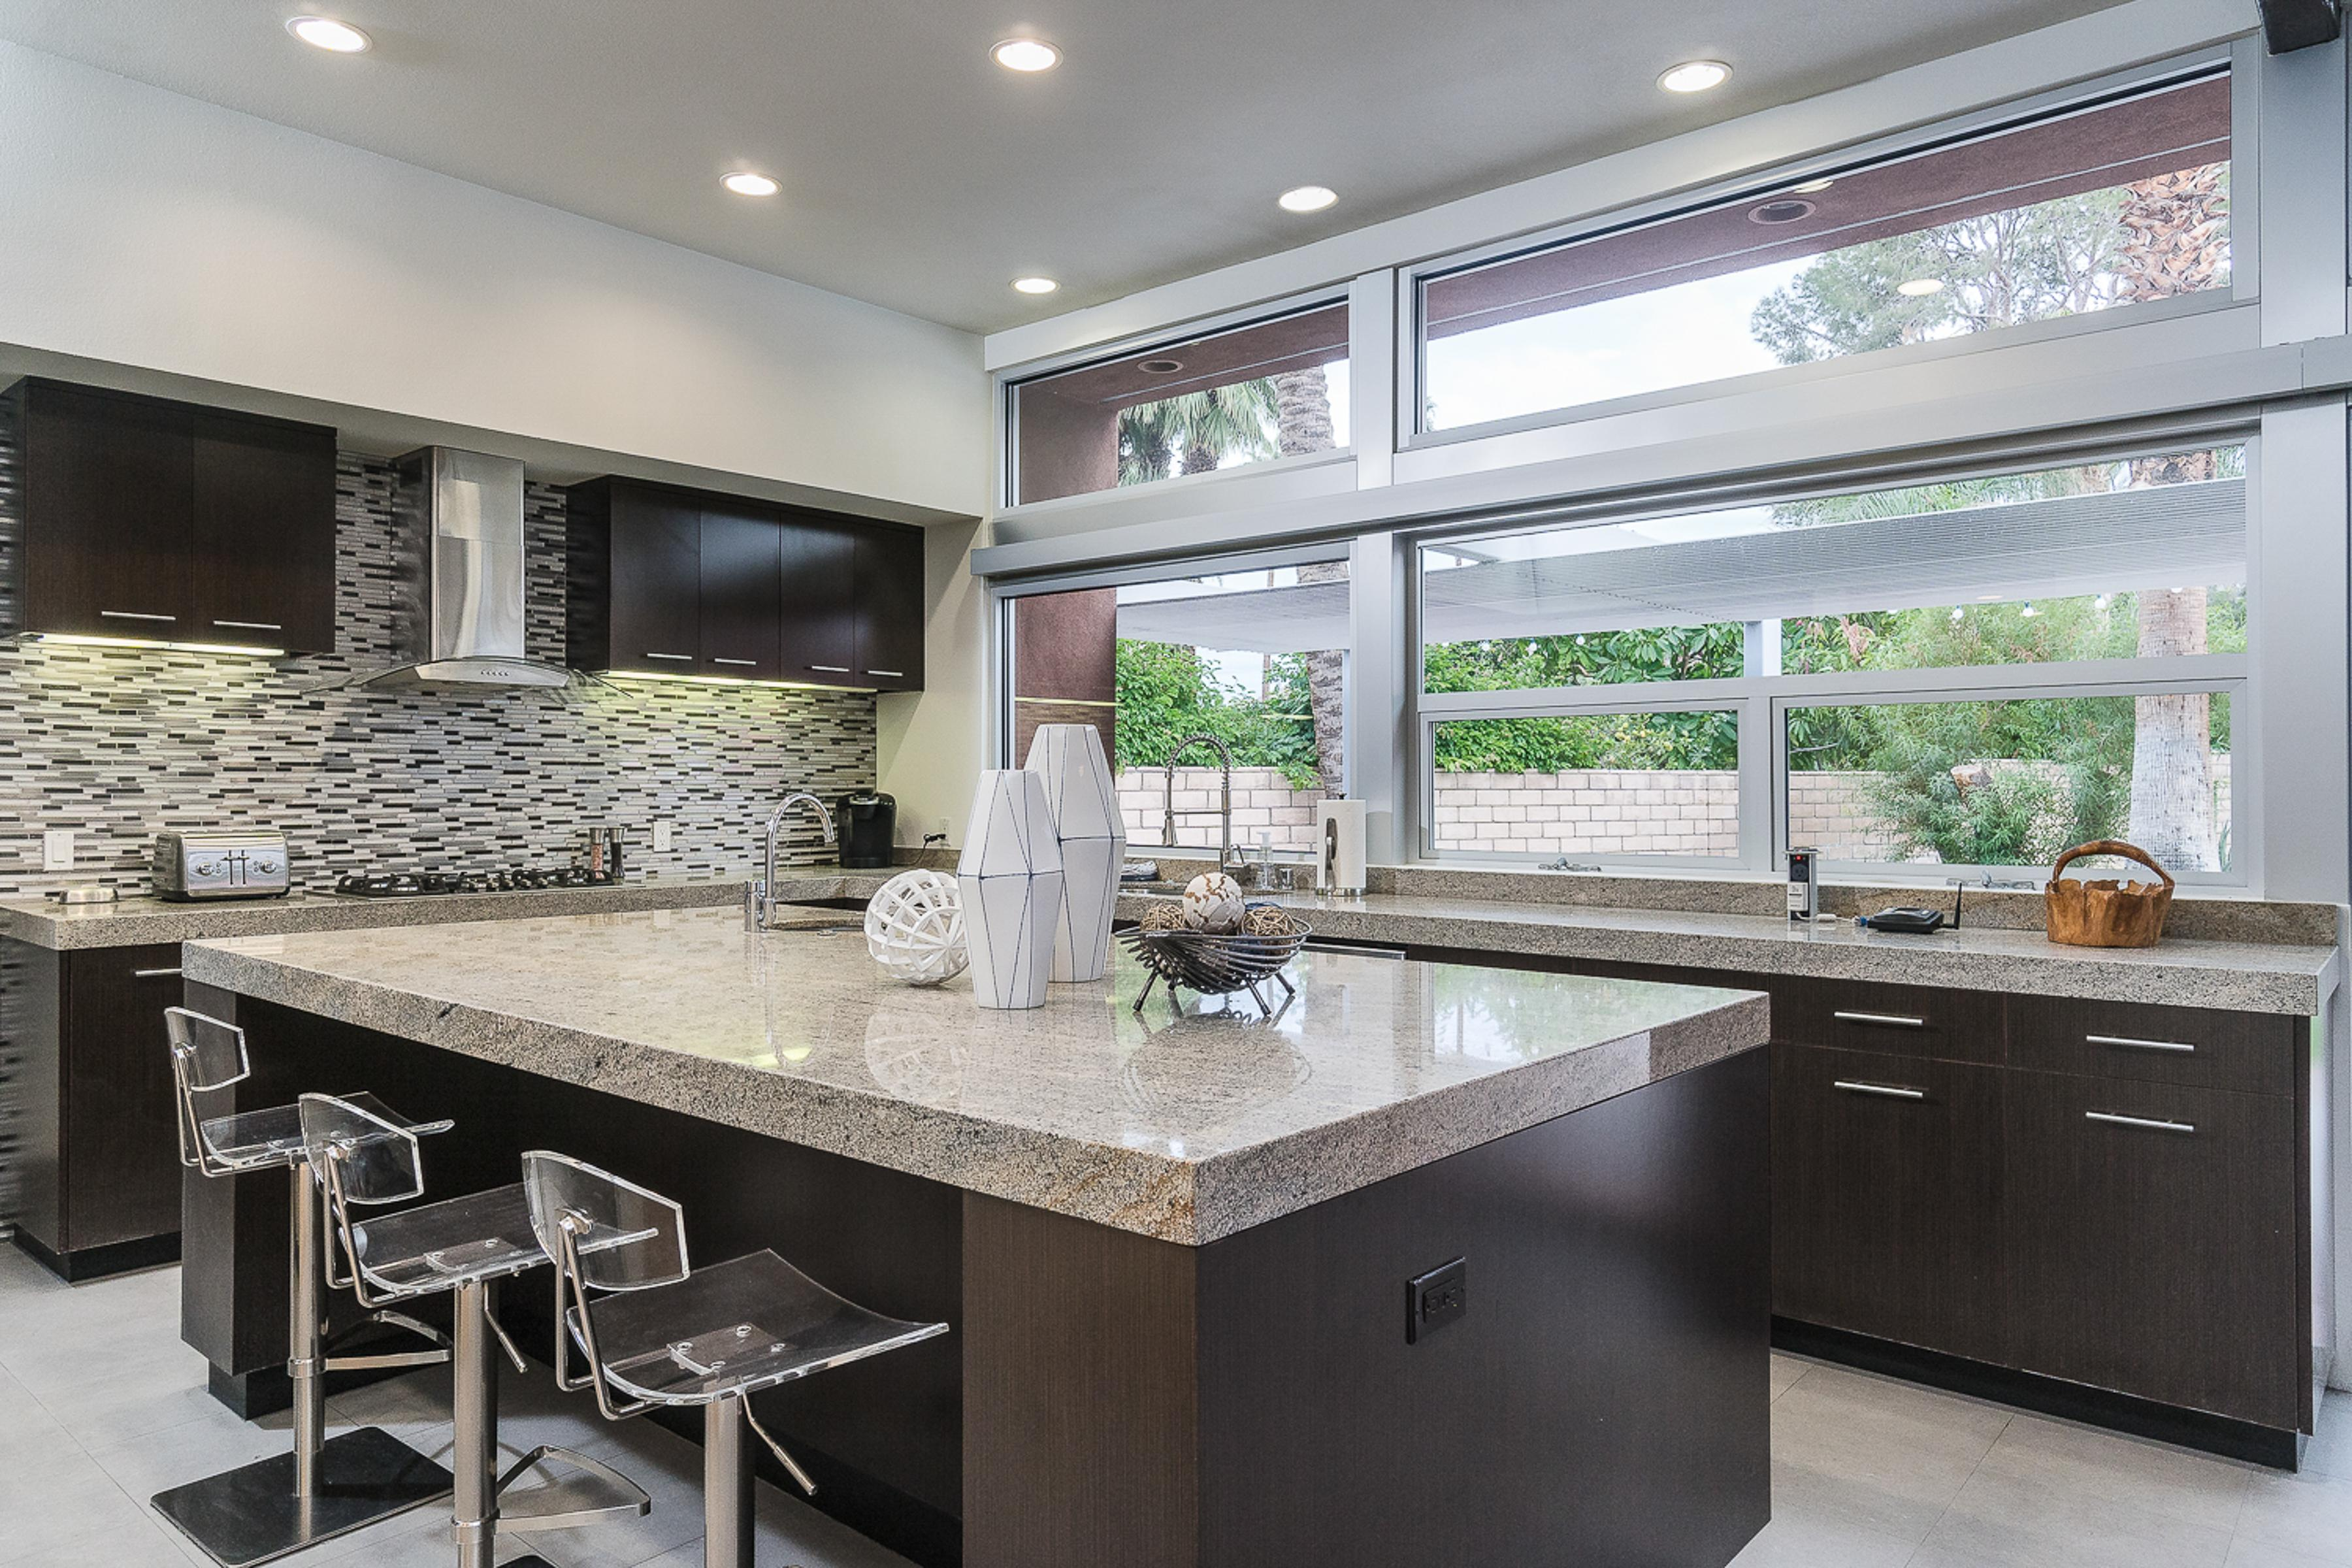 The well-stocked kitchen features high-end appliances and sleek granite counters. A starter supply of dish soap and paper towels is provided for your convenience.